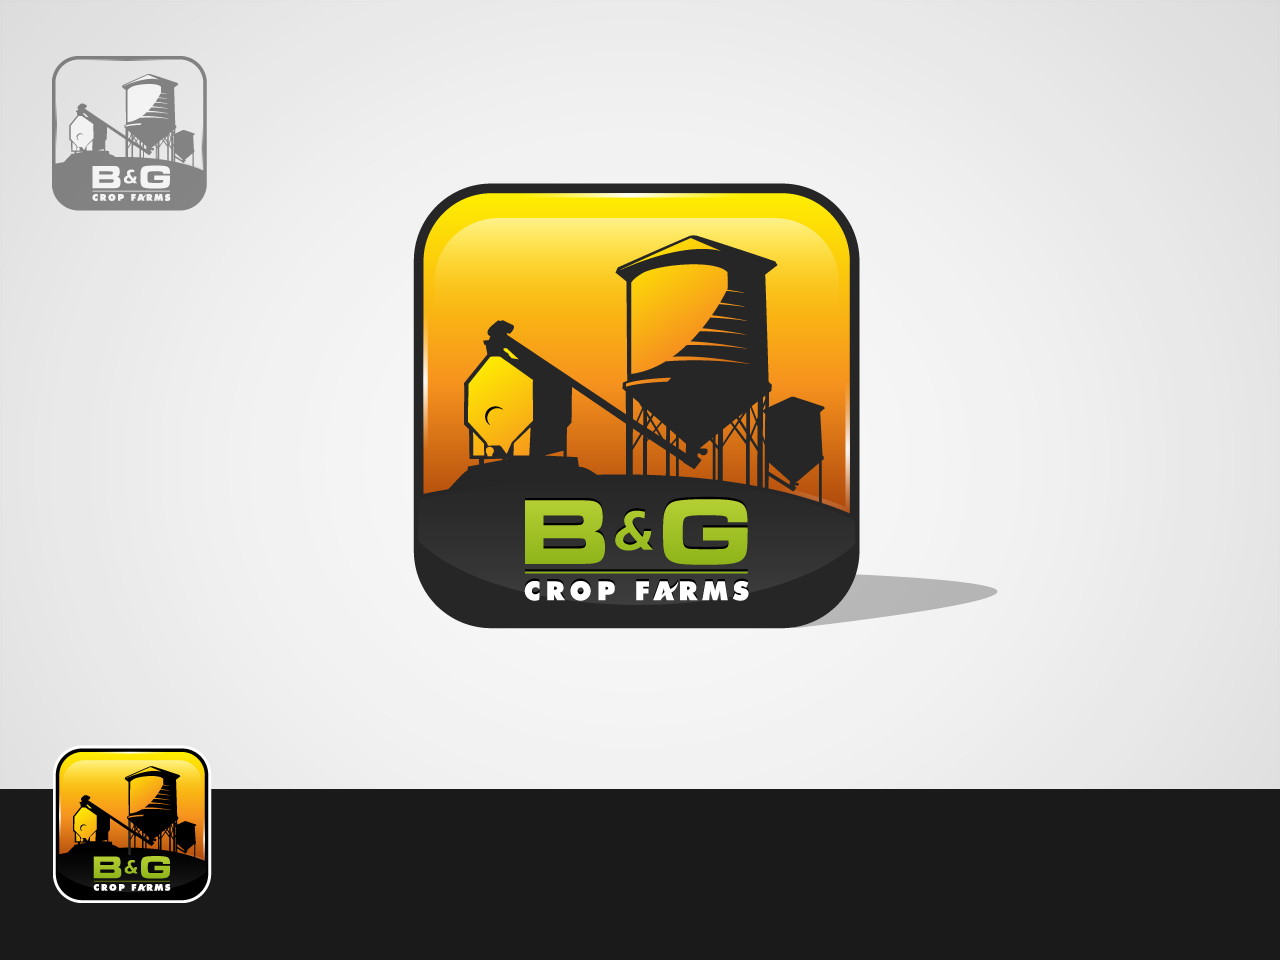 Logo Design by jpbituin - Entry No. 46 in the Logo Design Contest Artistic Logo Design for B & G Crop Farms.